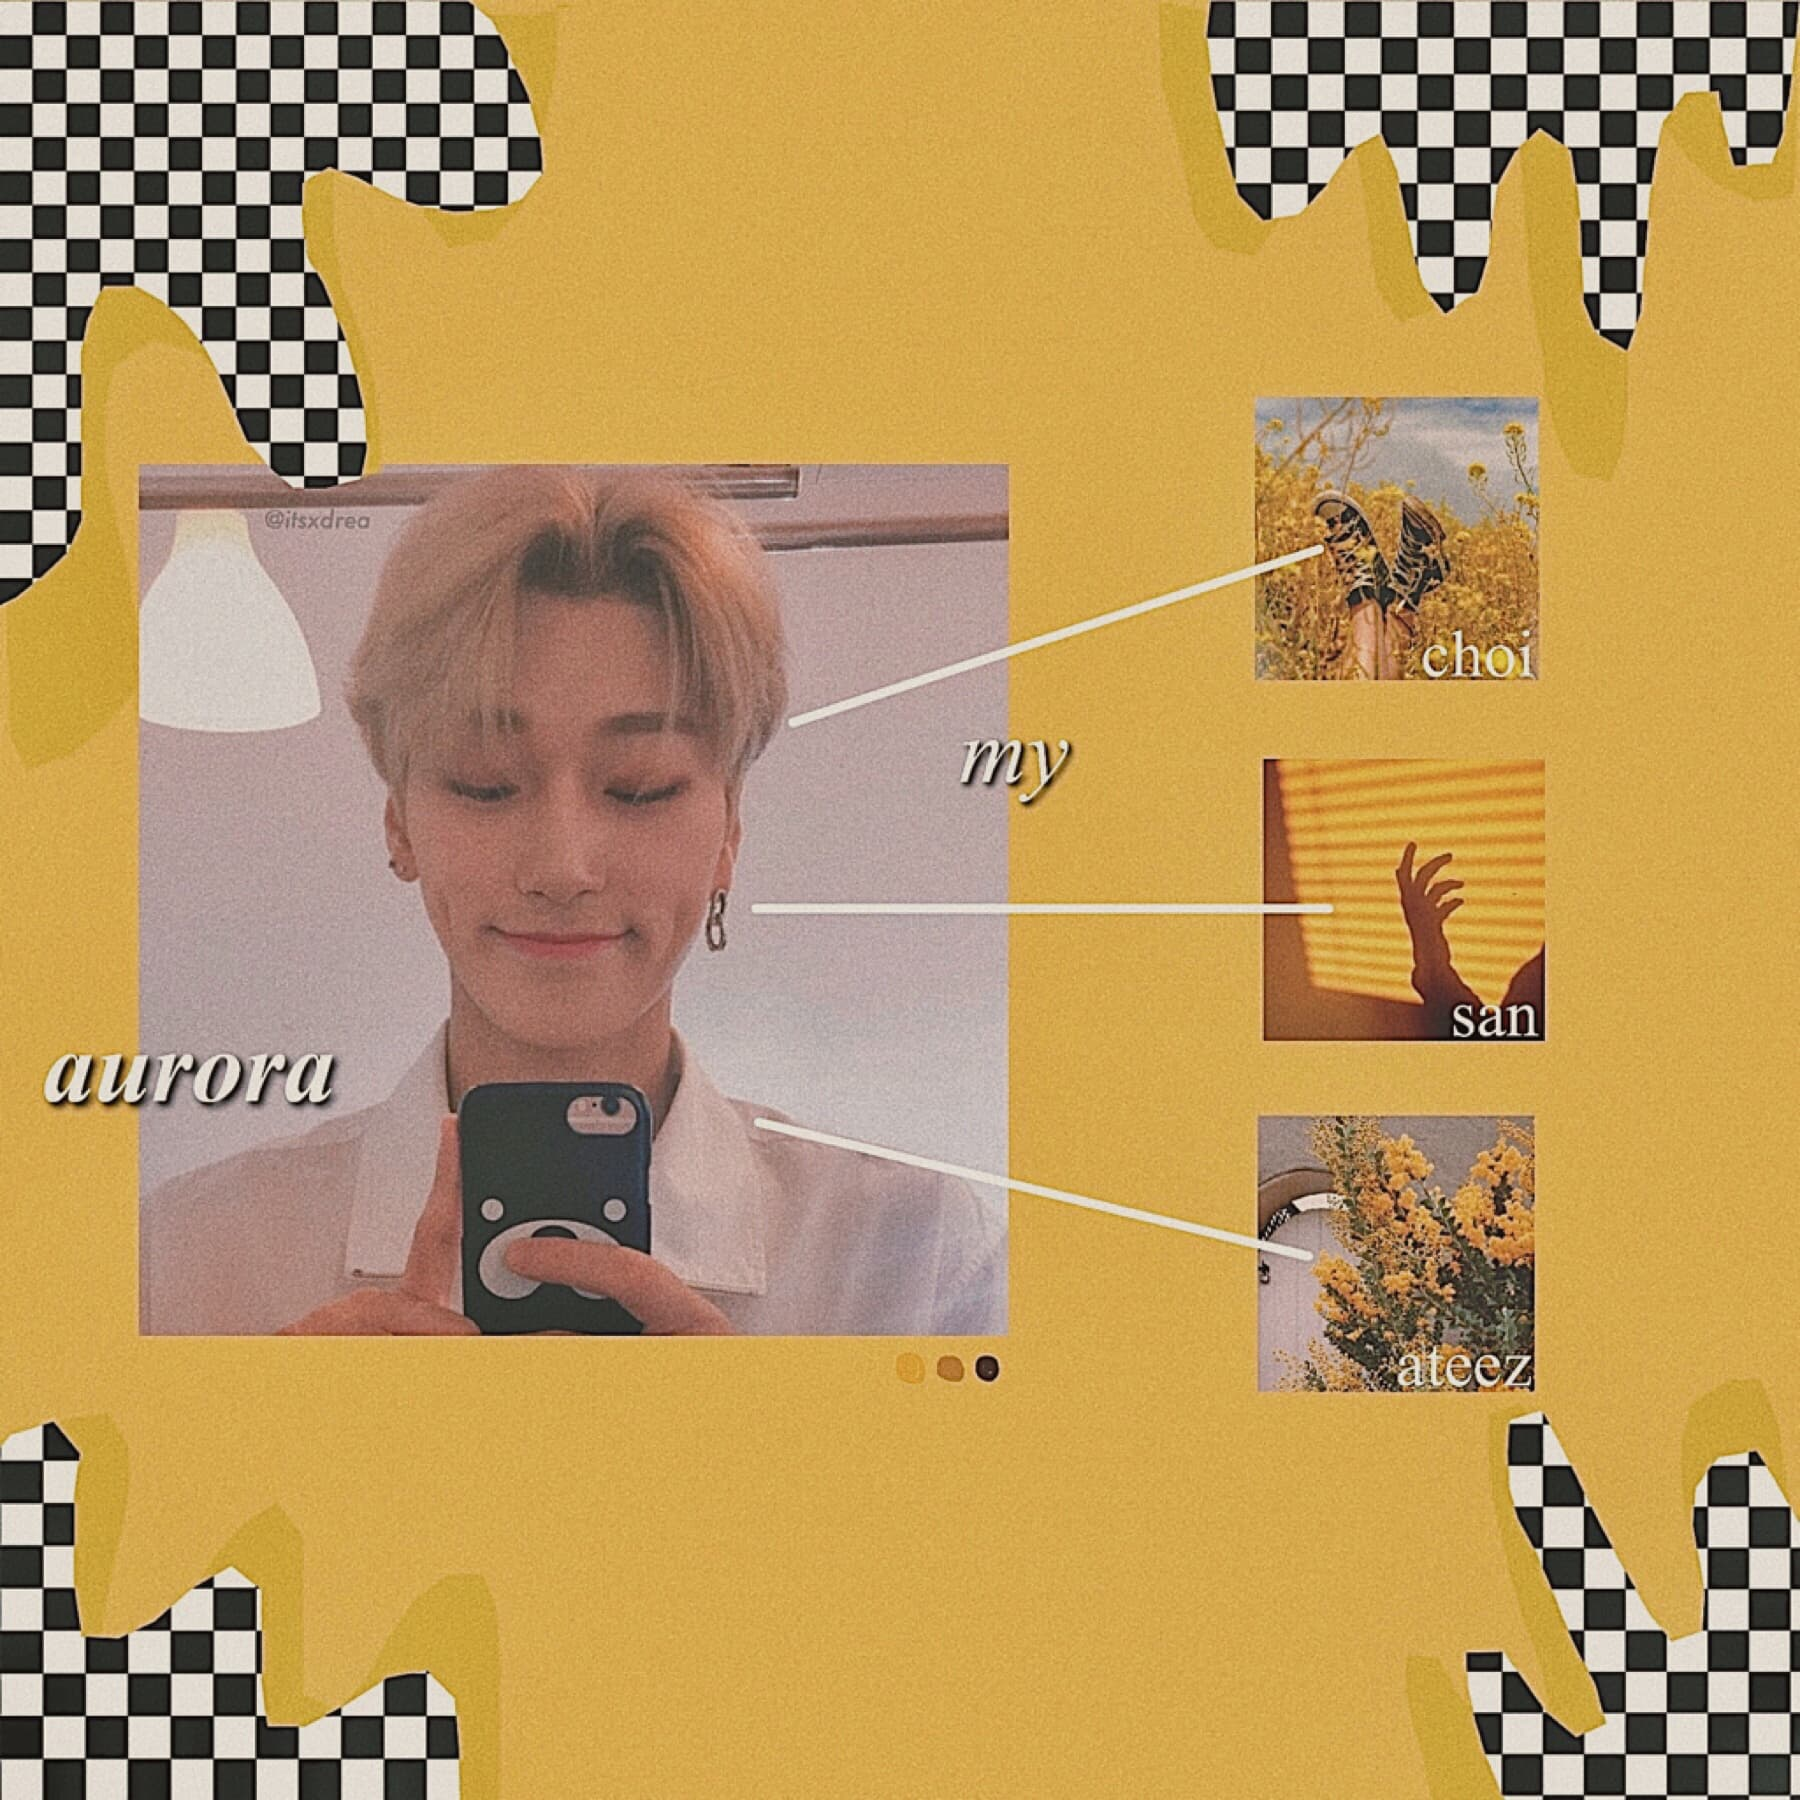 🌻 • choi san // ateez • > edit request for @multistan_ < omg i really wanna pre-order superm's new album, but i'm broke 😻 ALSO WEAR YOUR MASK P L E A S E 🙈🥰